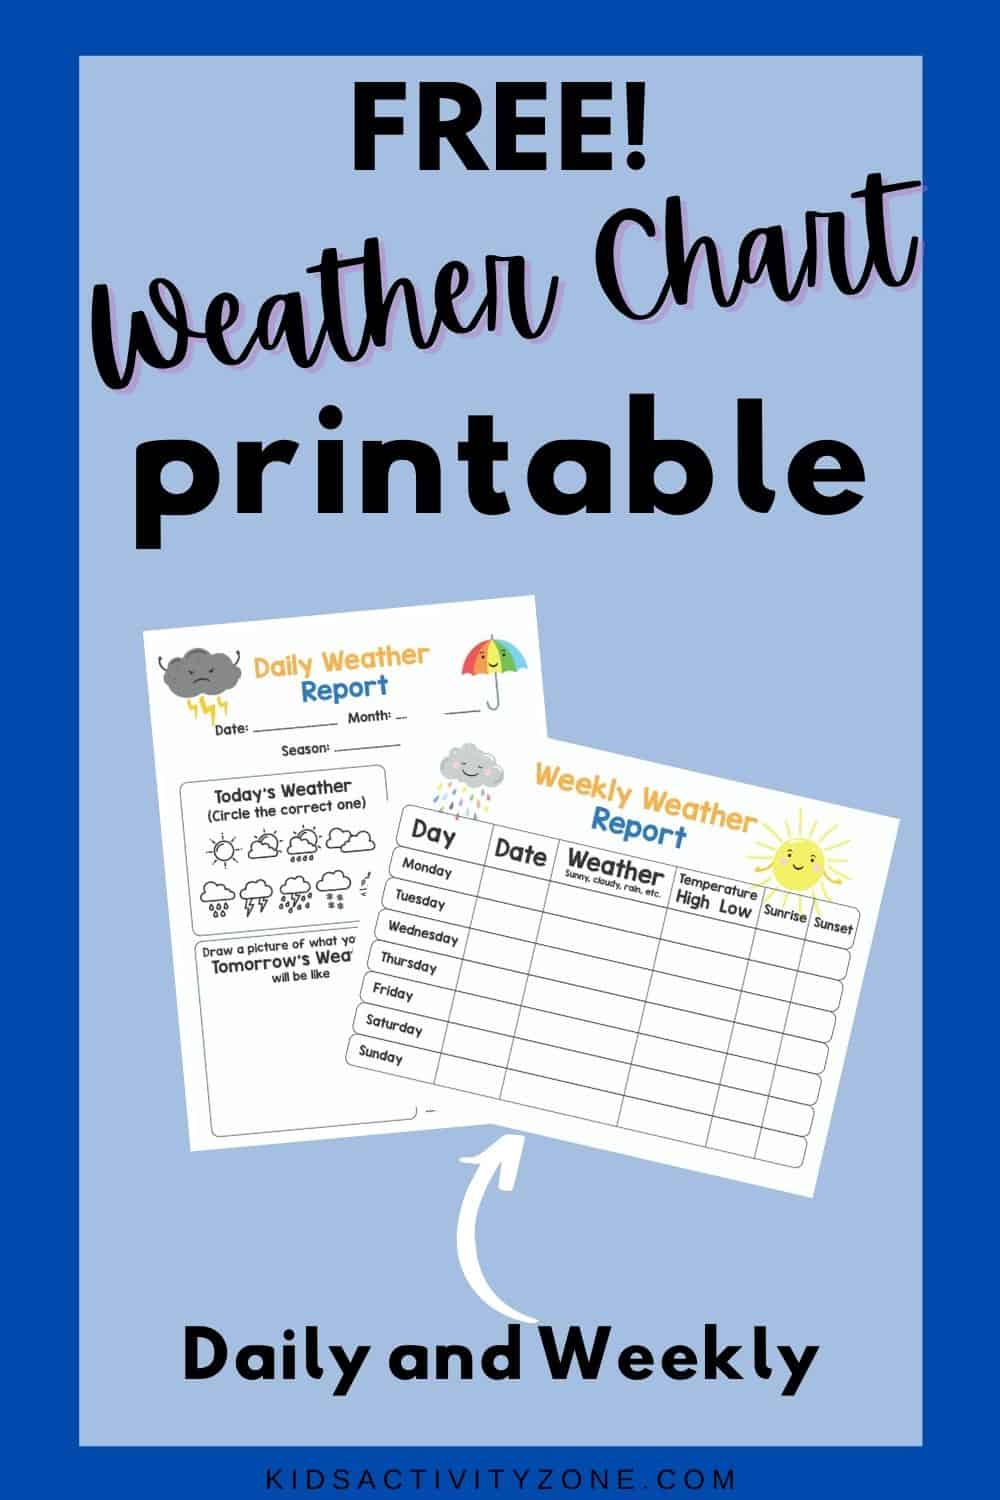 Weather Journal that's perfect for unit studies for elementary aged children. This free printable comes with a weekly and daily chart for recording the weather or predicting tomorrow's weather!